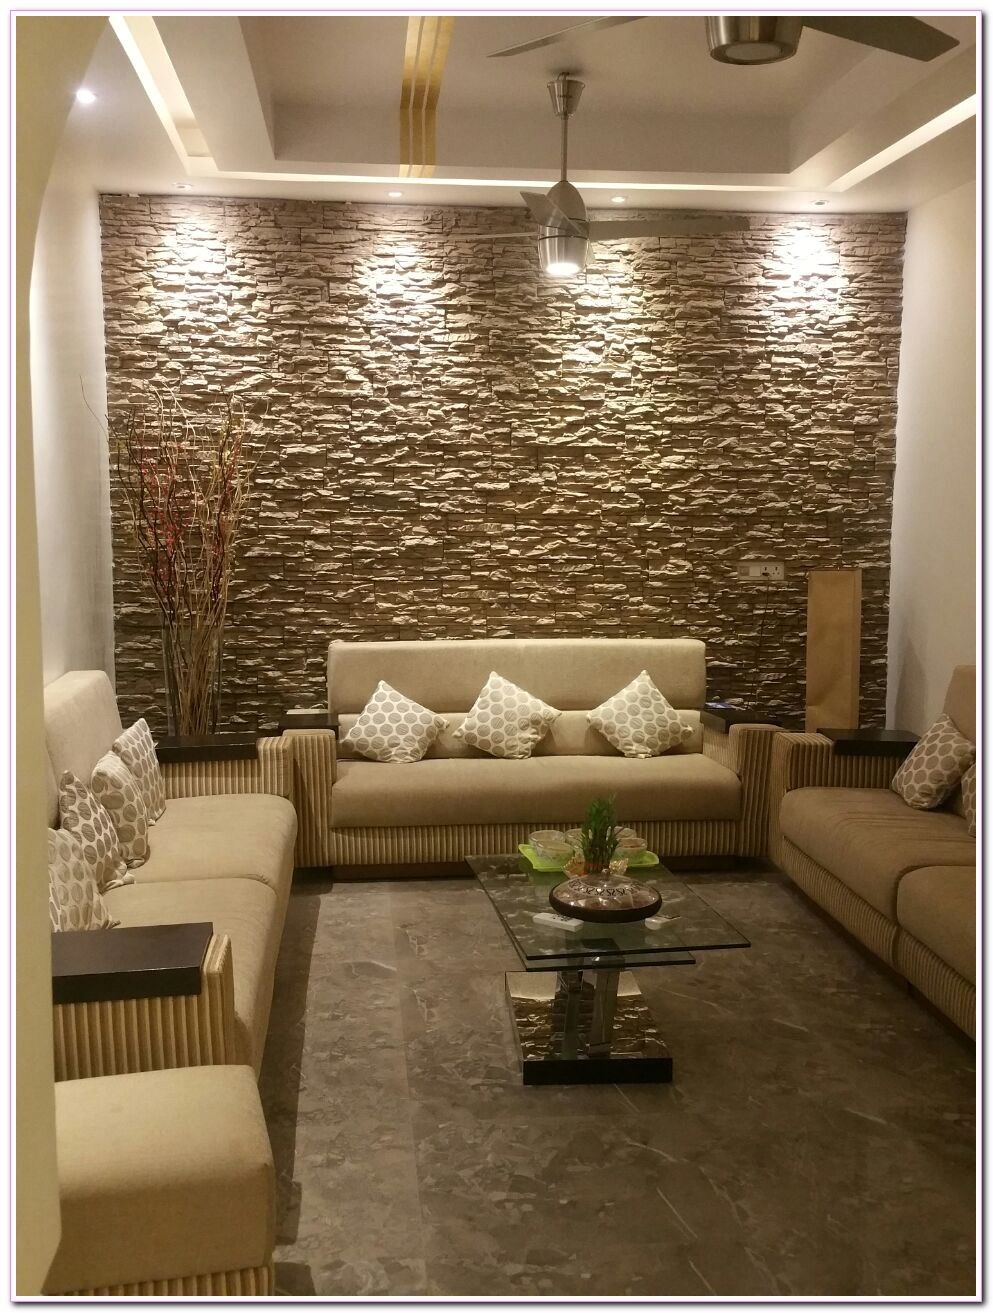 Living Room Wallpaper Accent Wall Interior Design In 2020 Interior Wall Design Stone Wall Interior Design Wall Tiles Living Room #tile #accent #wall #in #living #room